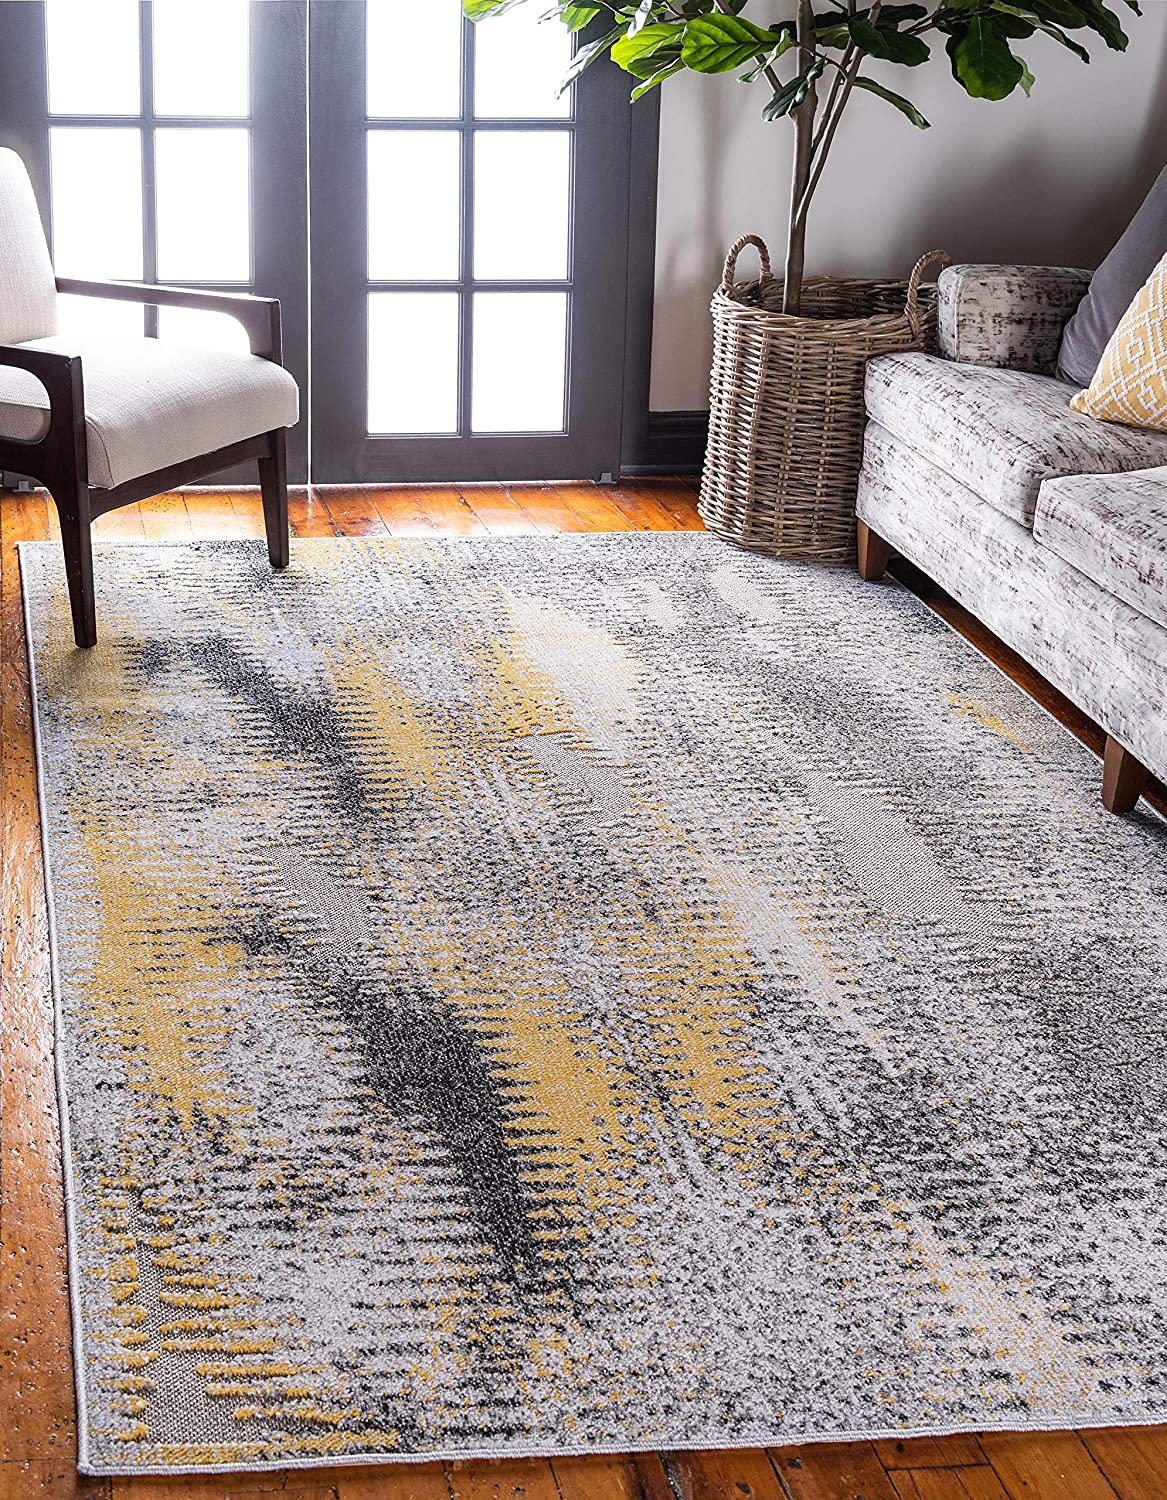 Unique Loom Outdoor Modern Collection Carved Distressed Transitional Indoor and Outdoor Flatweave Ivory Area Rug (8' 0 x 10' 0)